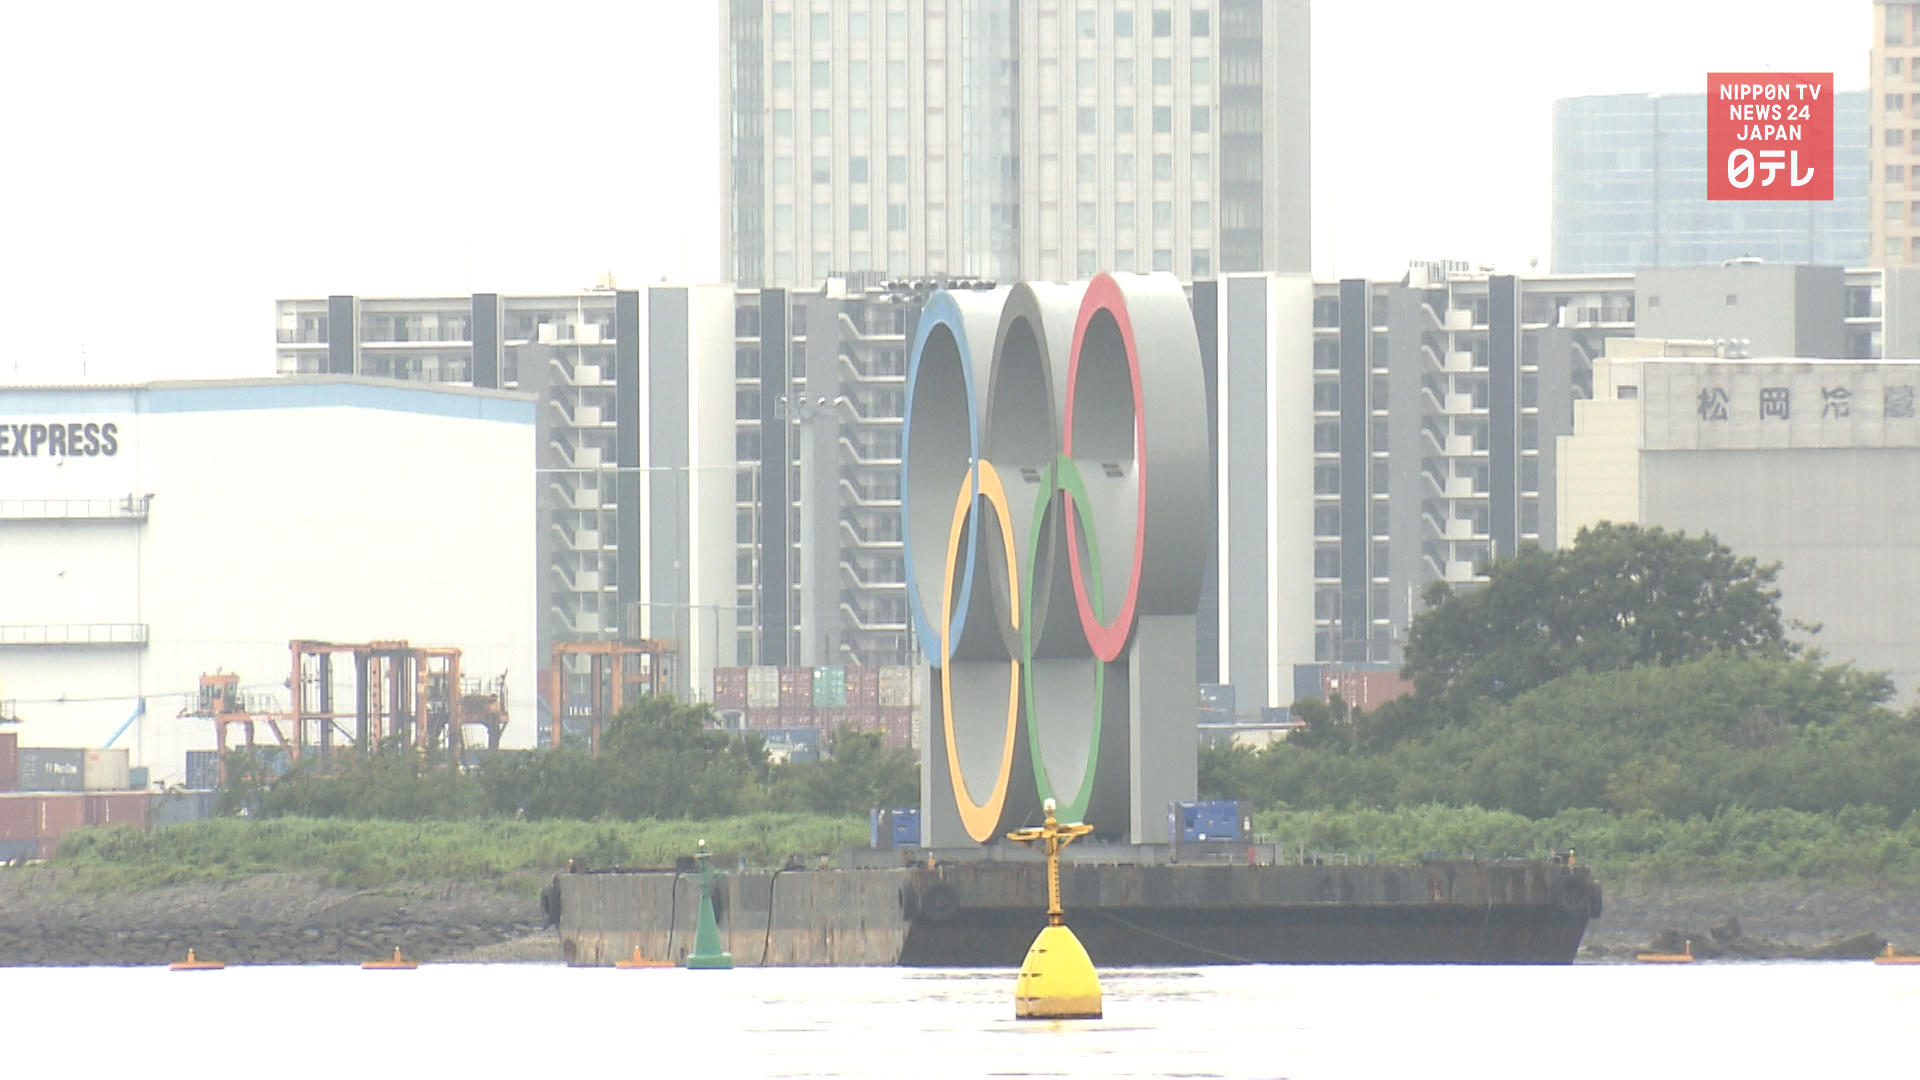 Water quality at Tokyo Olympic venue